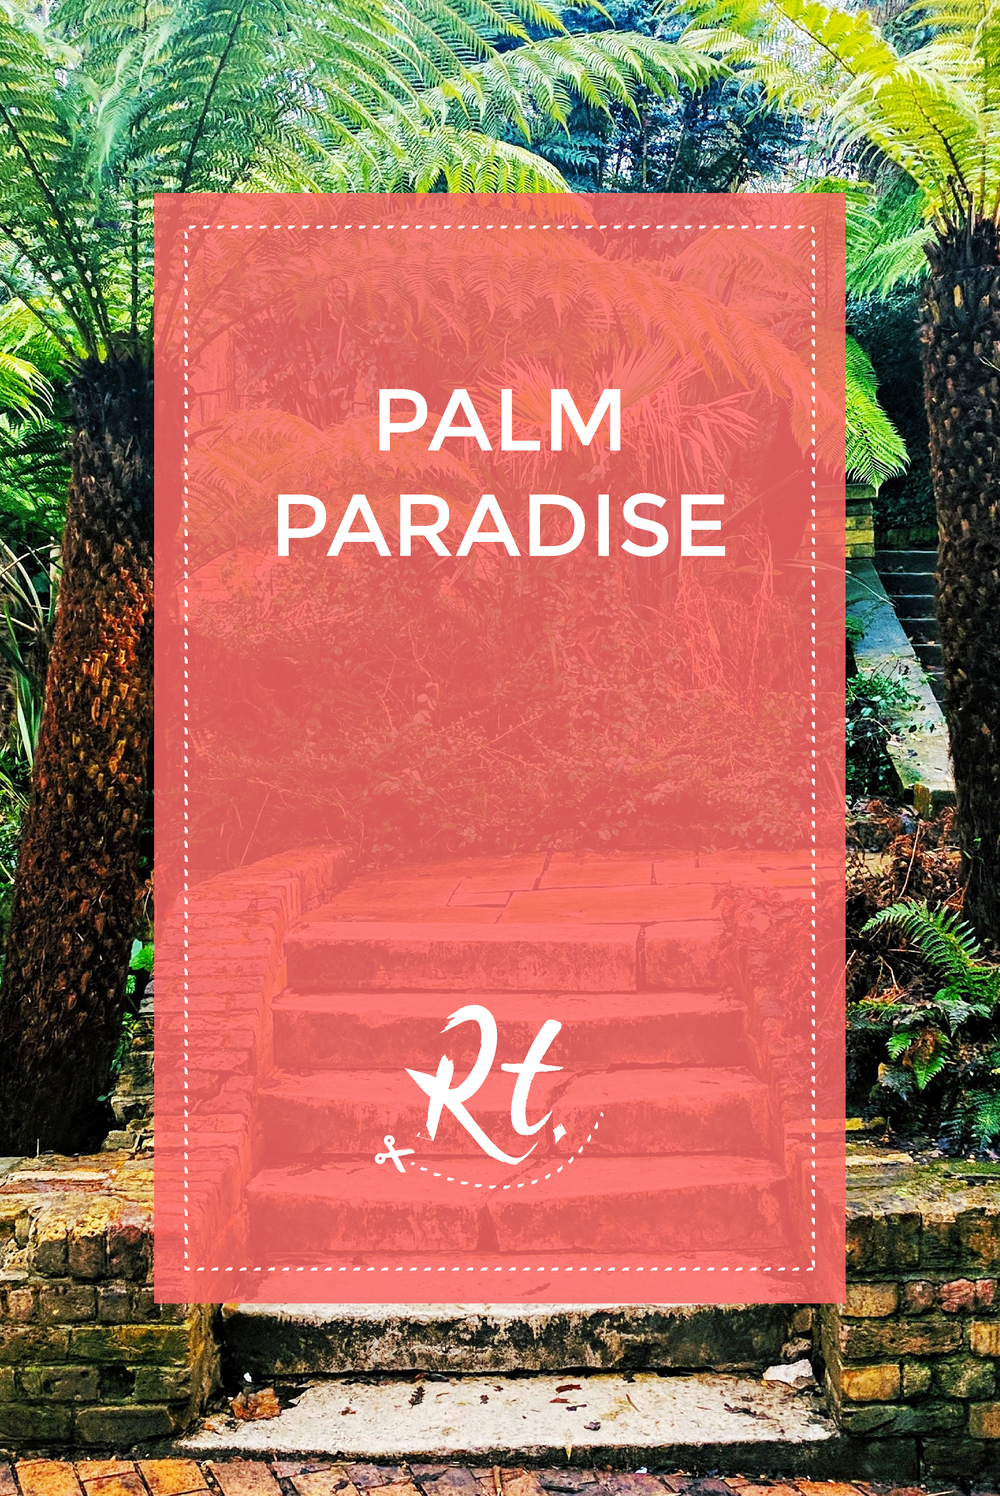 Palm Paradise by Rosh Thanki, Holland Park palm trees